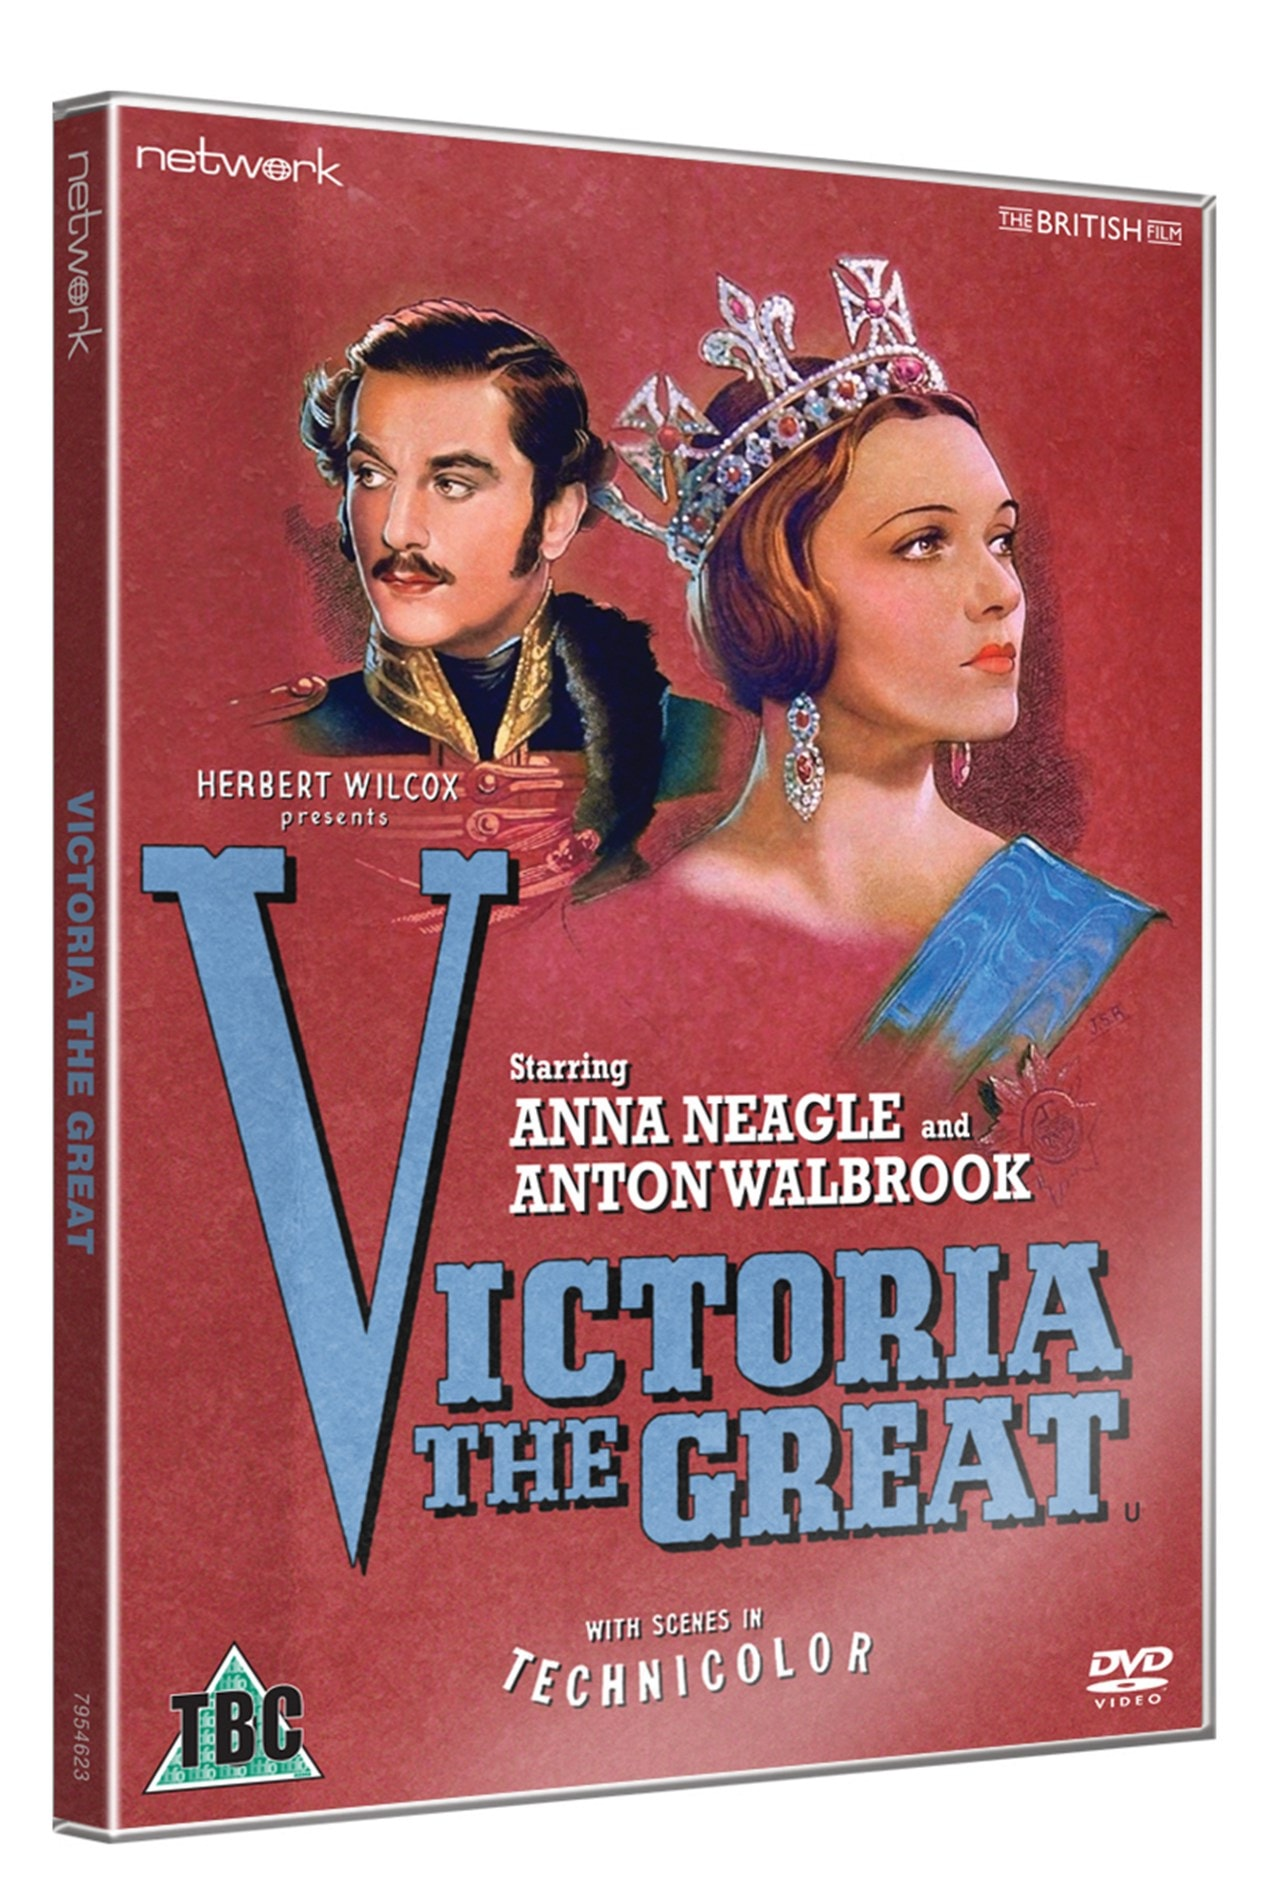 Victoria the Great - 2